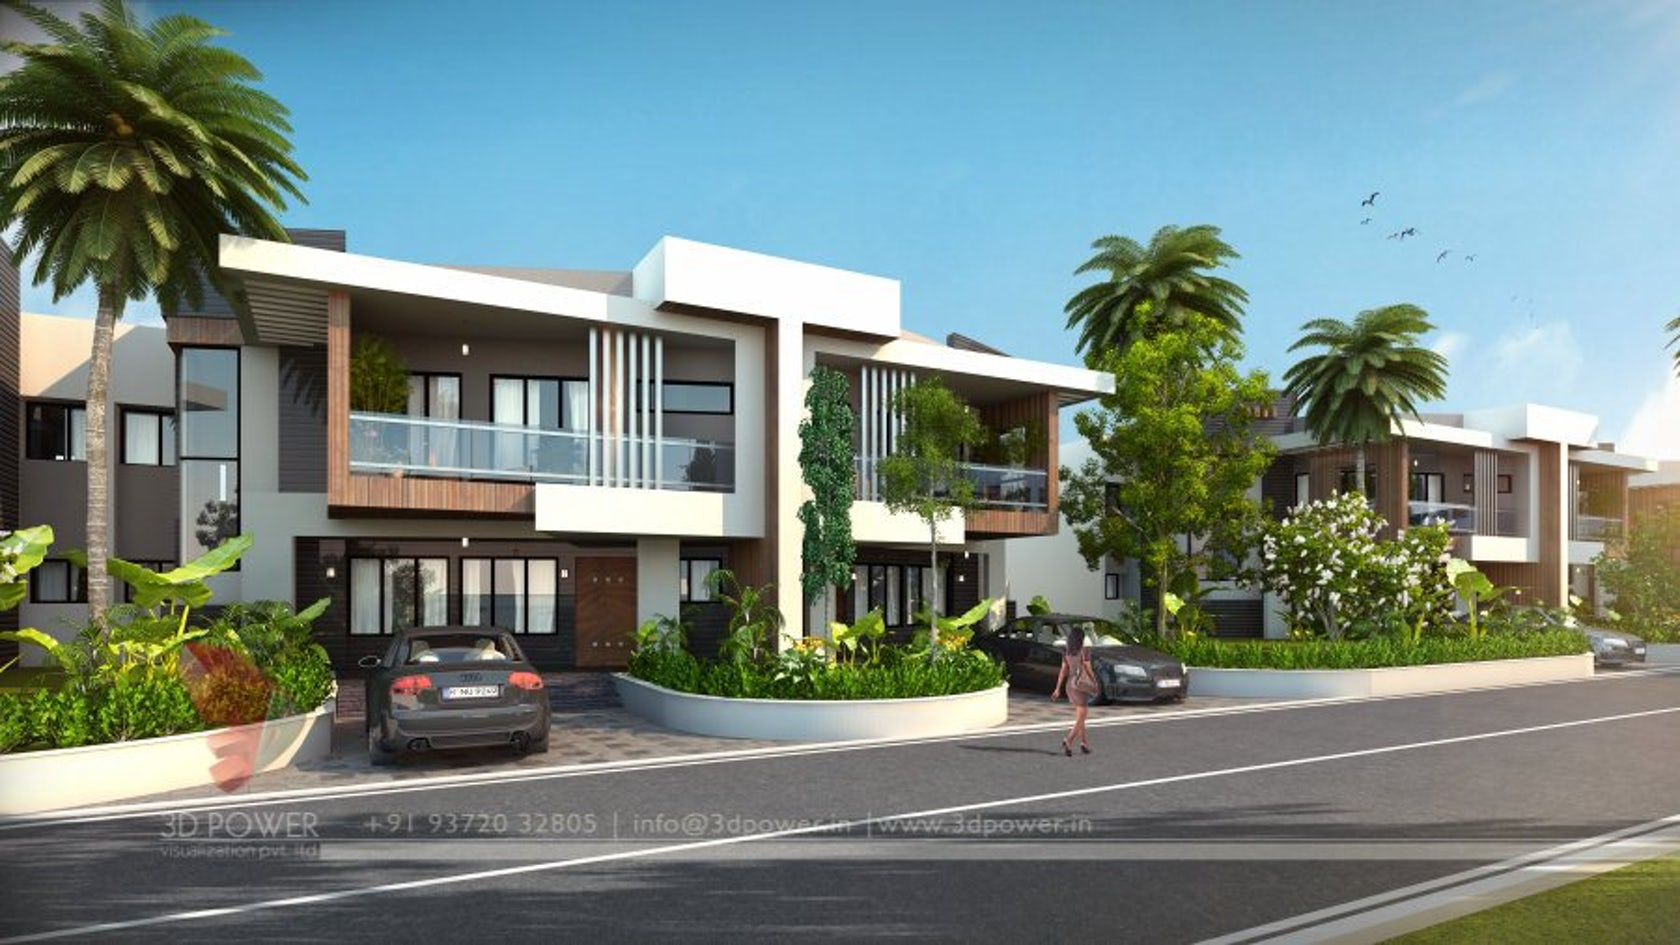 Ultra Modern Township Exterior Day Rendering And Elevation